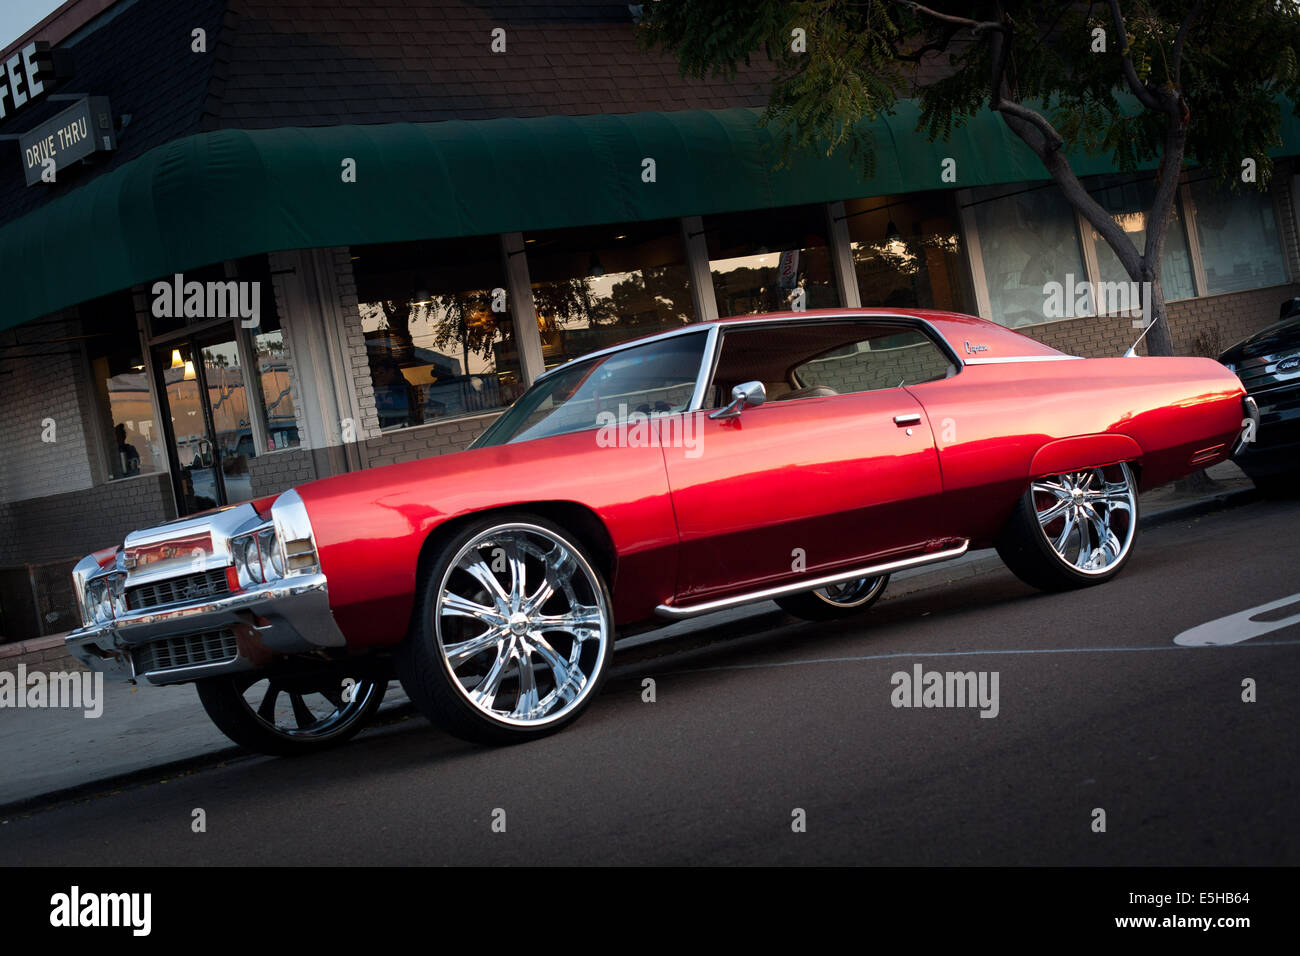 Chevrolet caprice stock photos chevrolet caprice stock images alamy chevrolet caprice with chrome plated star rims parked in front of a starbucks in publicscrutiny Choice Image